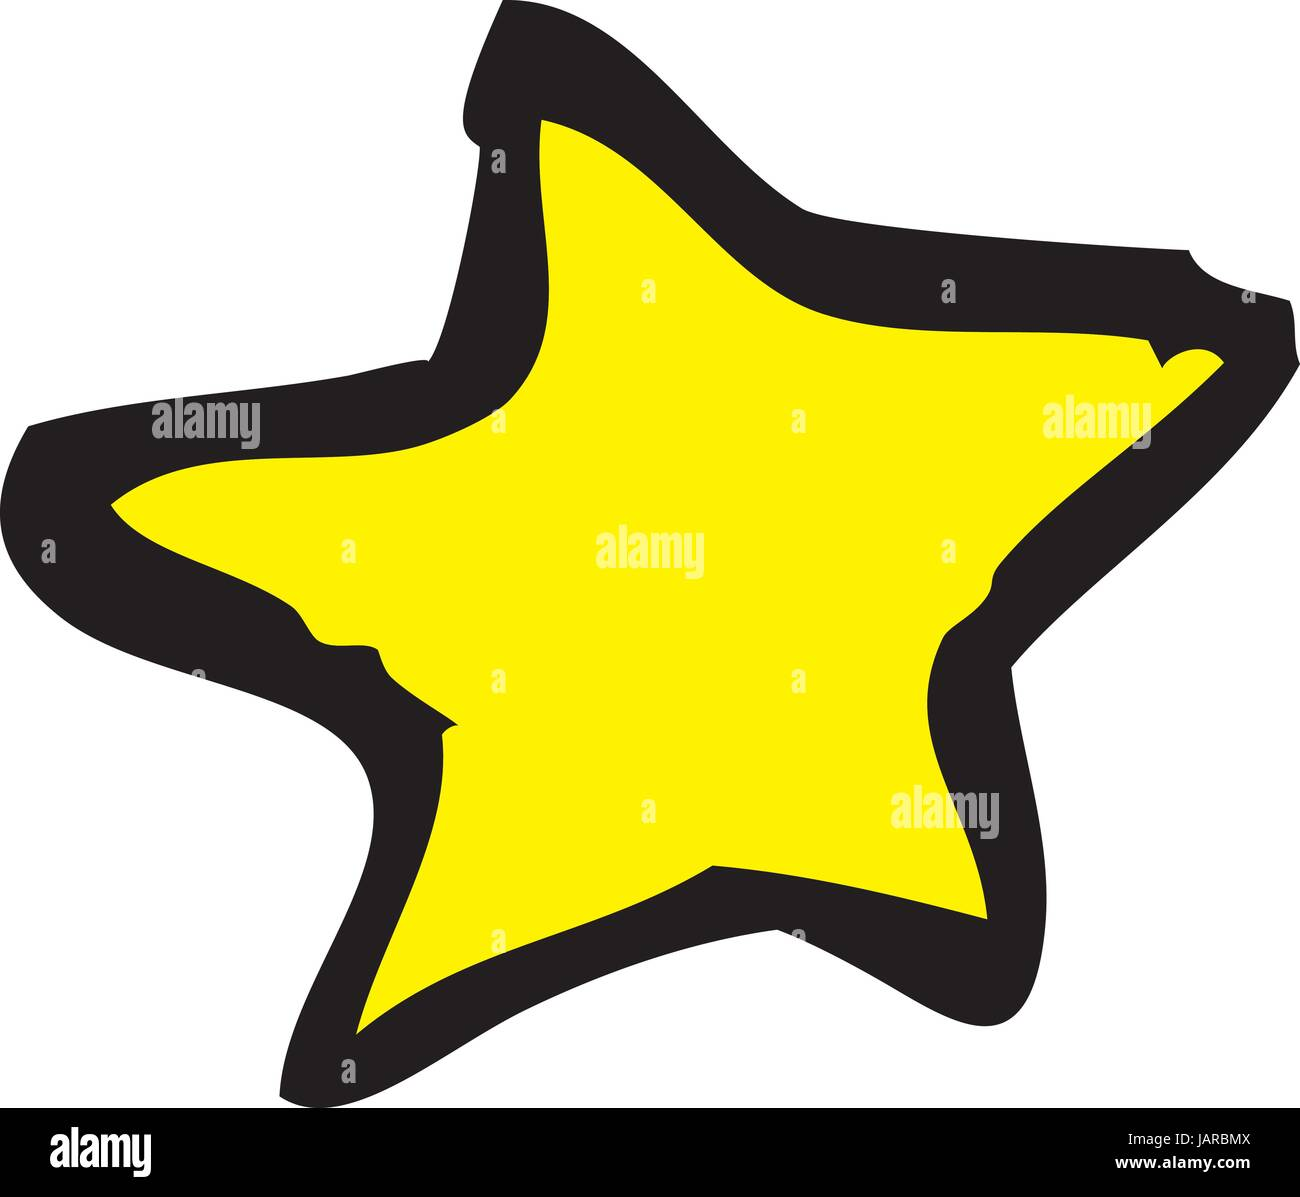 Star drawn in a rough hand drawn sketch style vector - Stock Image